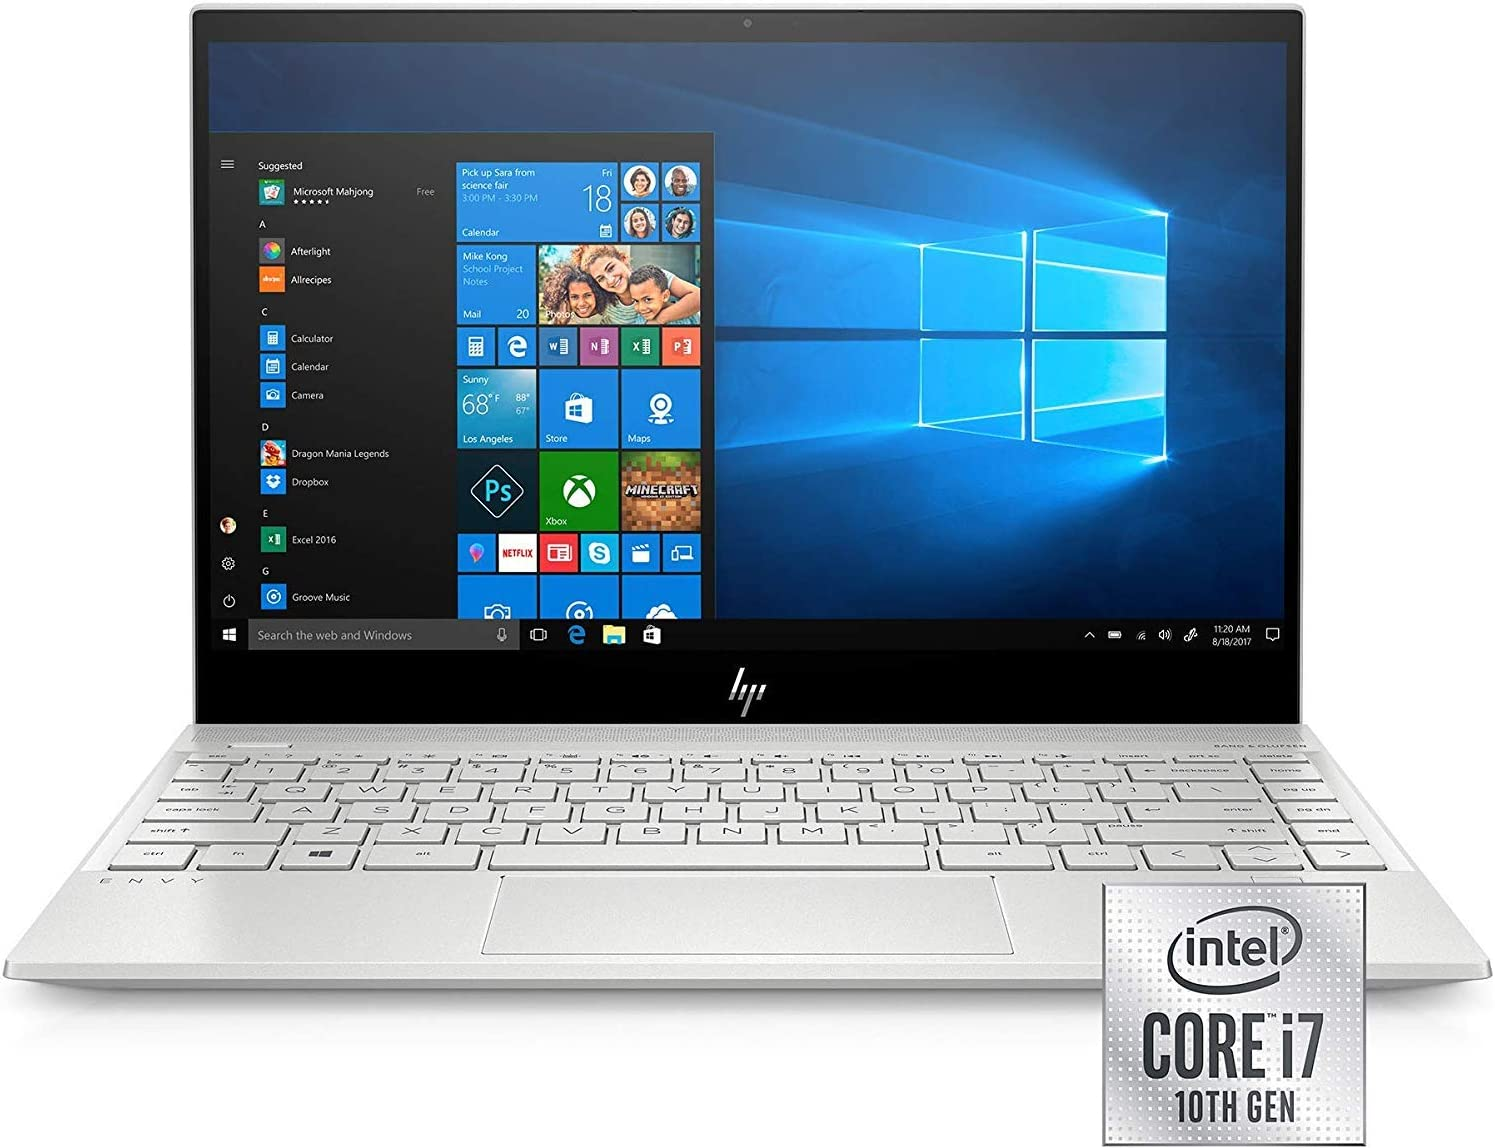 """HP Envy 13 13.3"""" Touchscreen Laptop Intel Core i7 8GB RAM 512GB SSD - 10th Gen i7-1065G7 Quad-core - Intel Iris Plus Graphics - in-Plane Switching (IPS) Technology - BrightView Display Technology"""